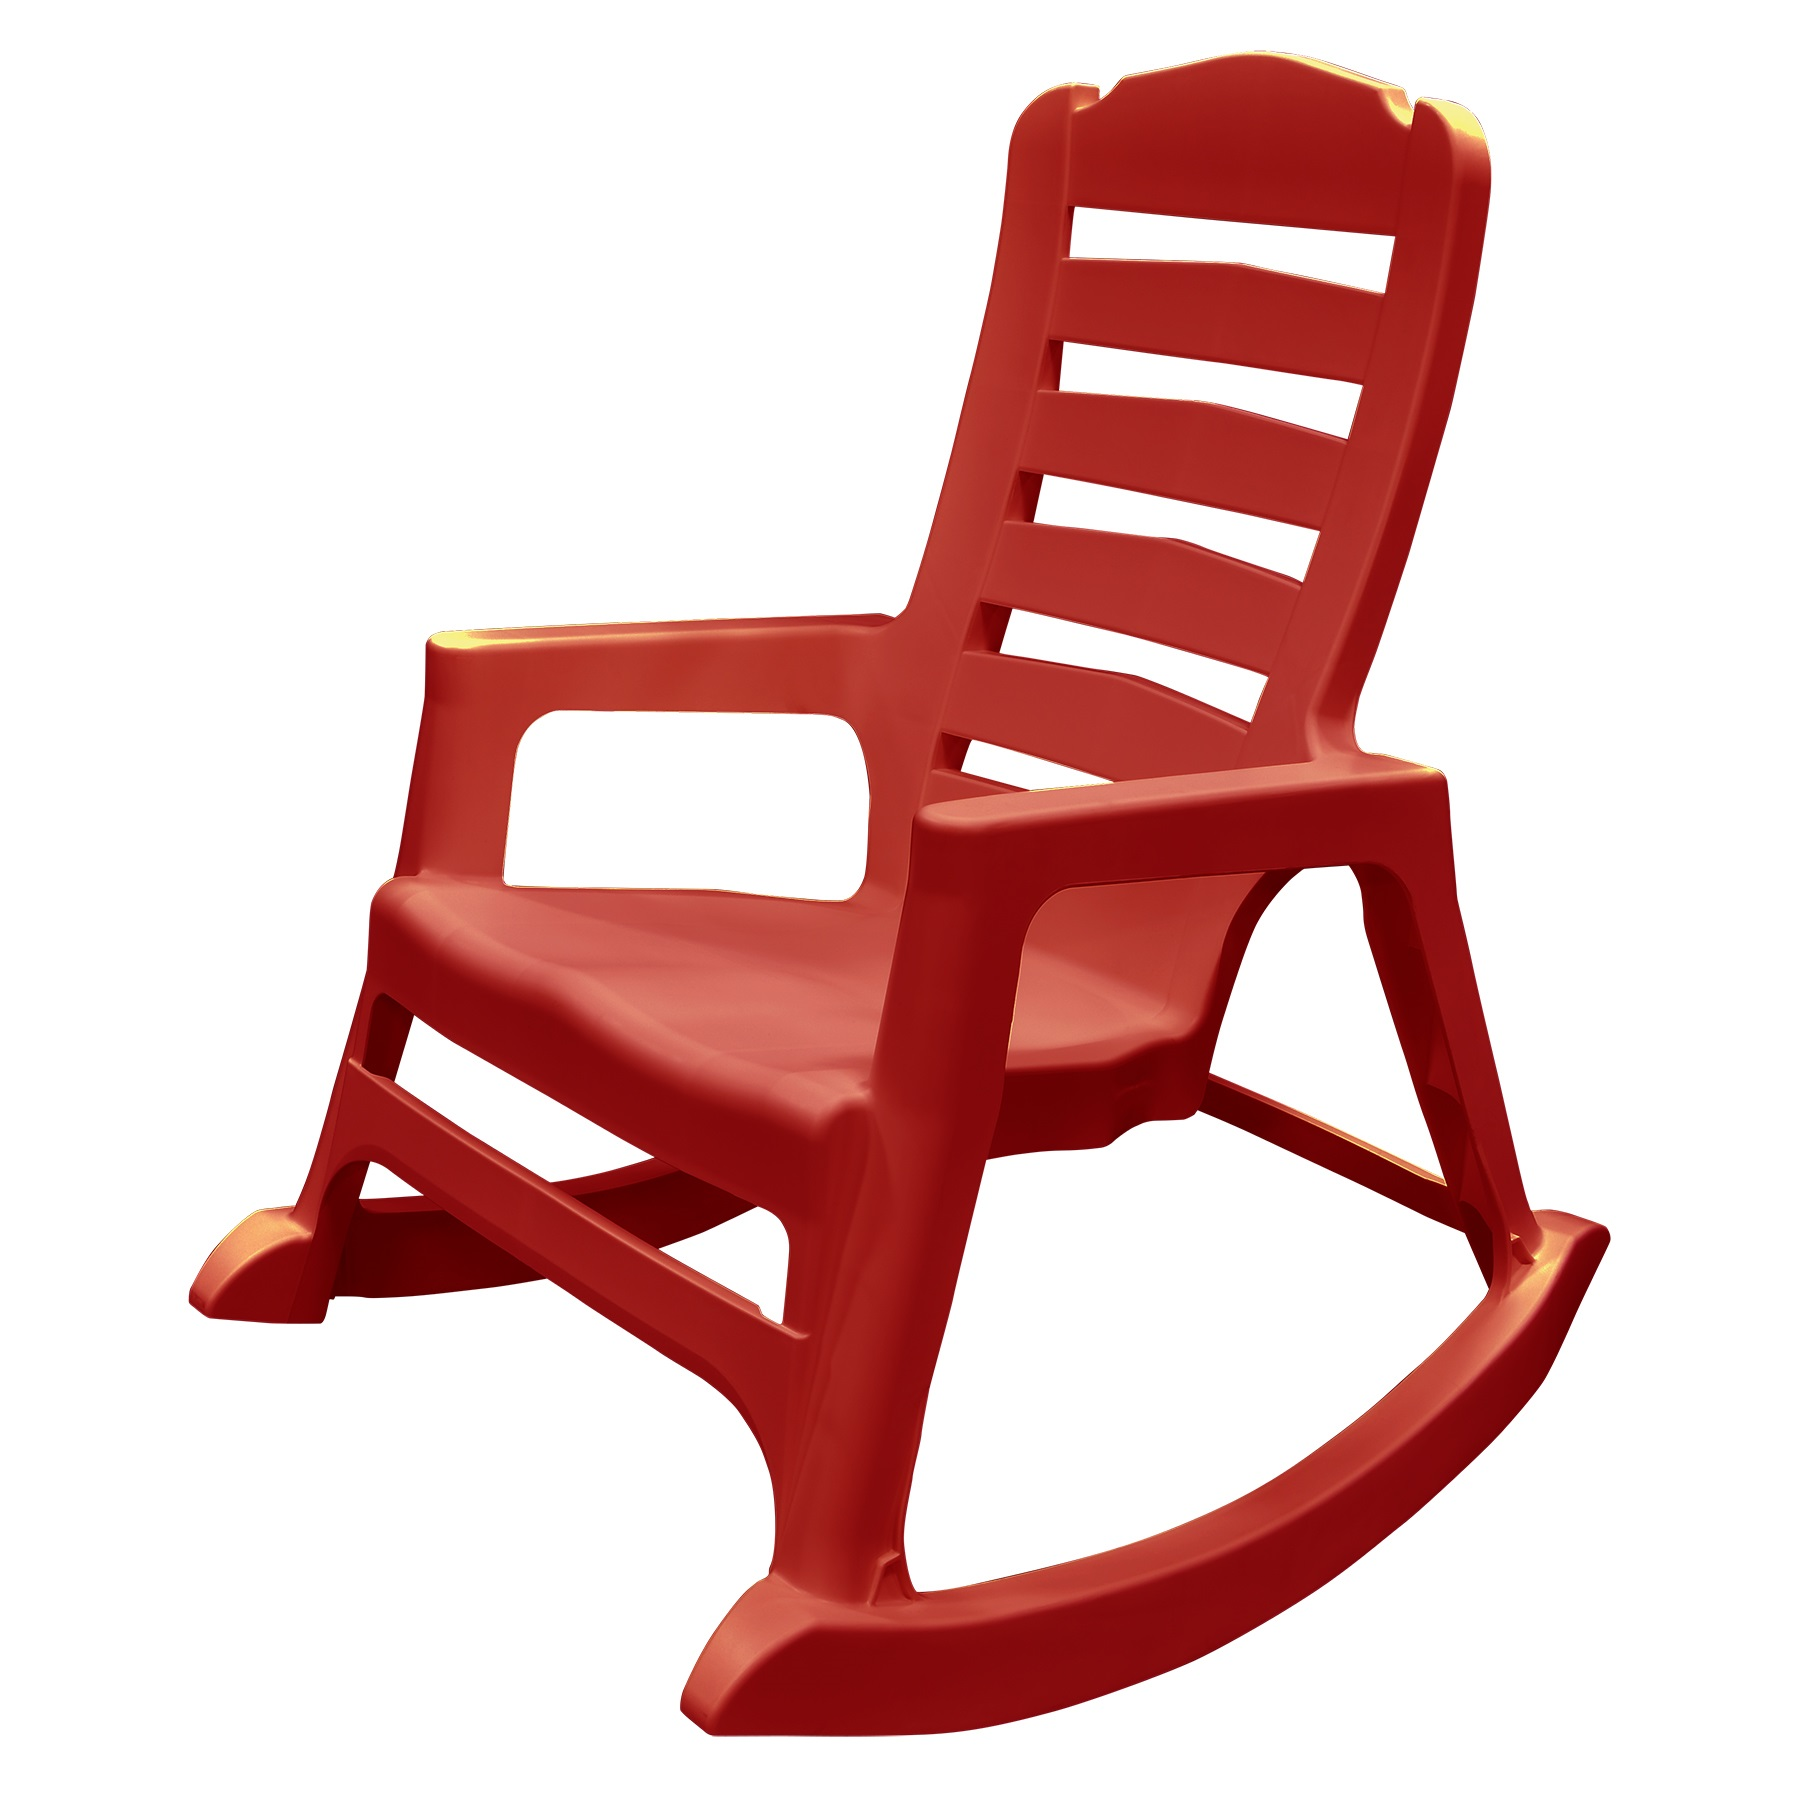 Adams Manufacturing Resin Patio Big Easy Rocking Chair - Cherry Red